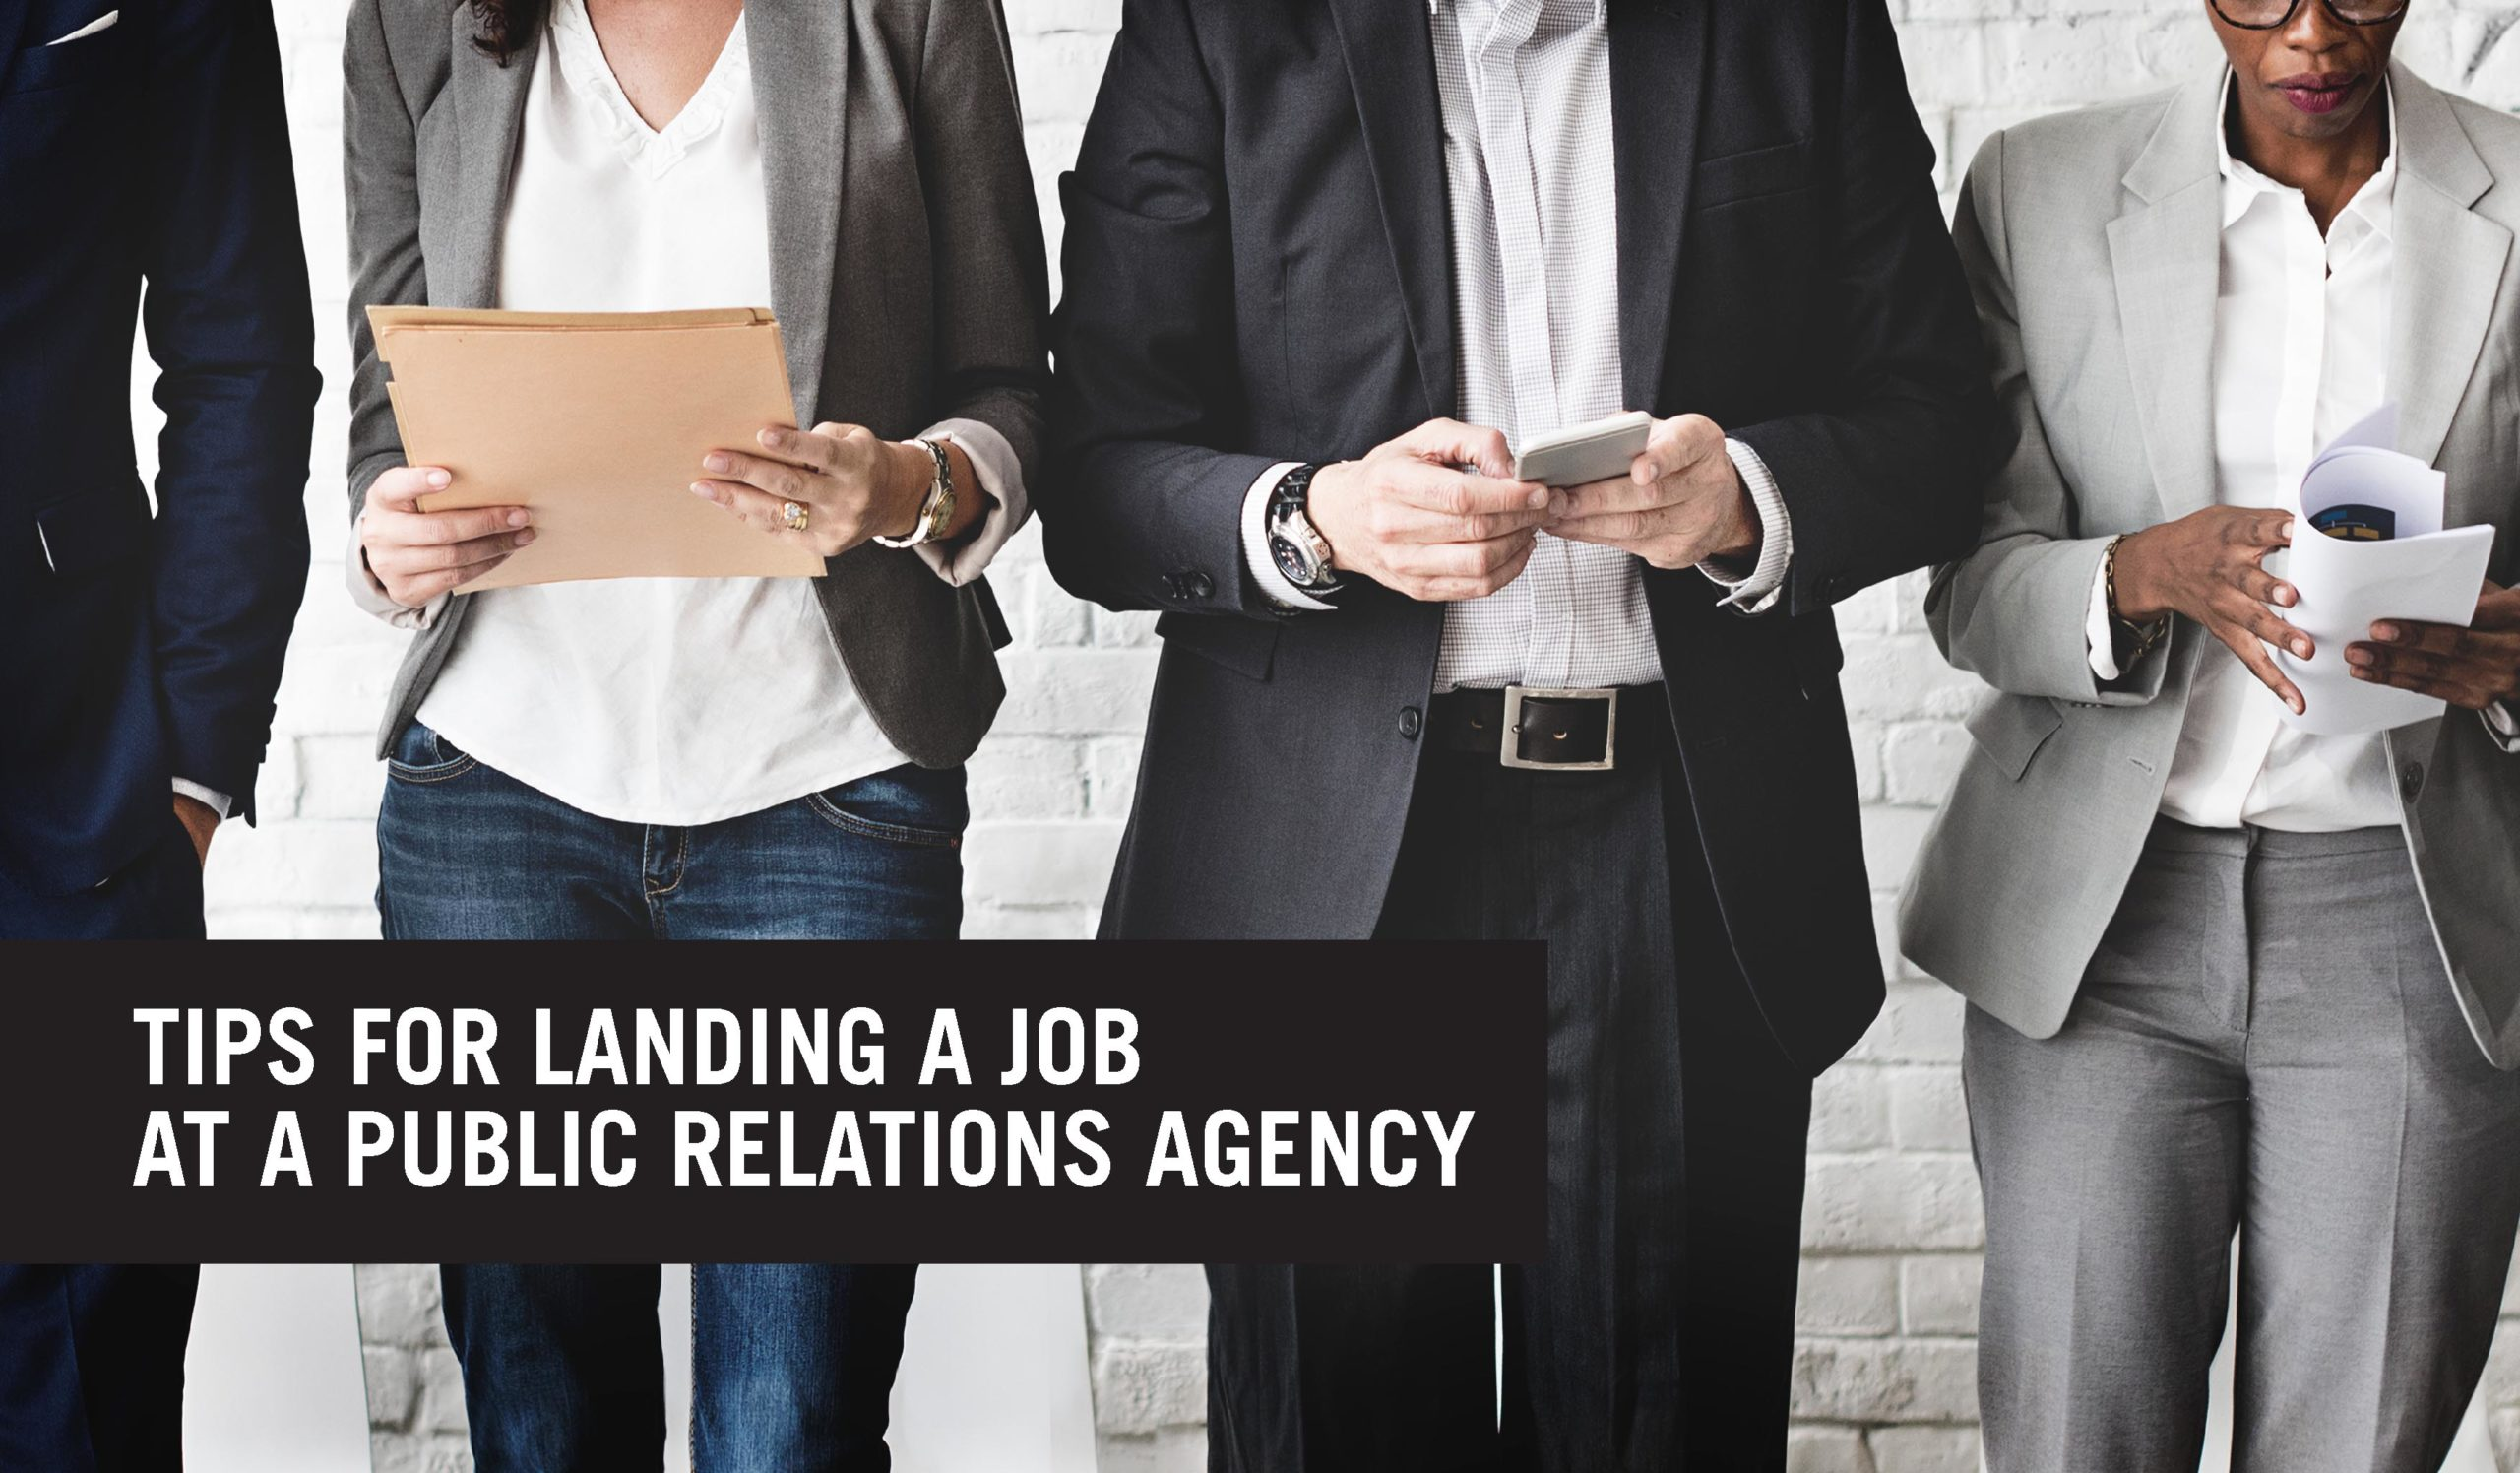 Tips For Landing a Job at a Public Relations Agency